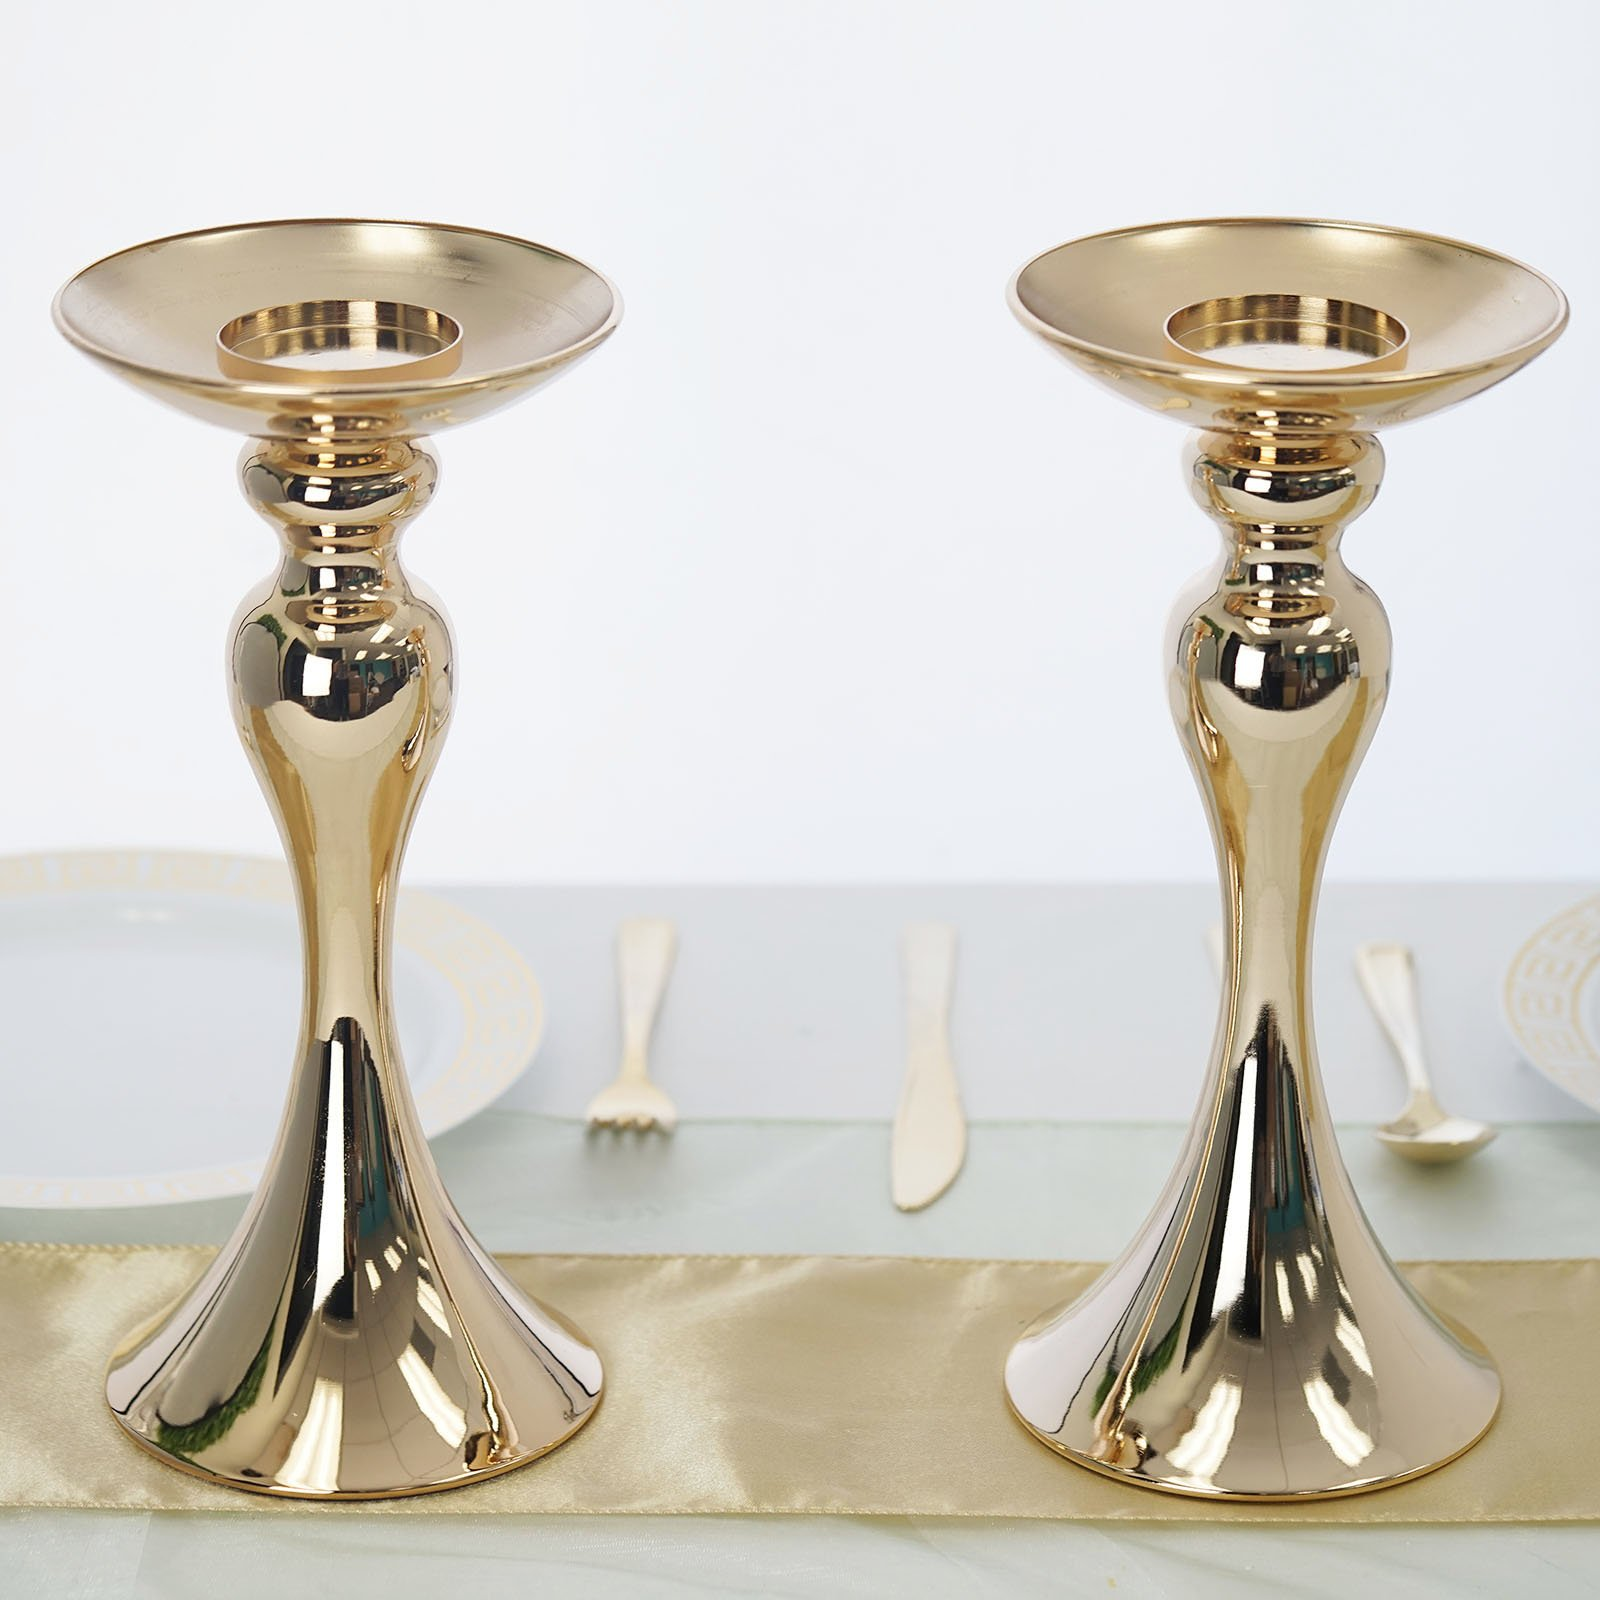 2 Gold Metal 12 Tall Pillar Candle Holders Risers Wedding Party Centerpieces Ebay